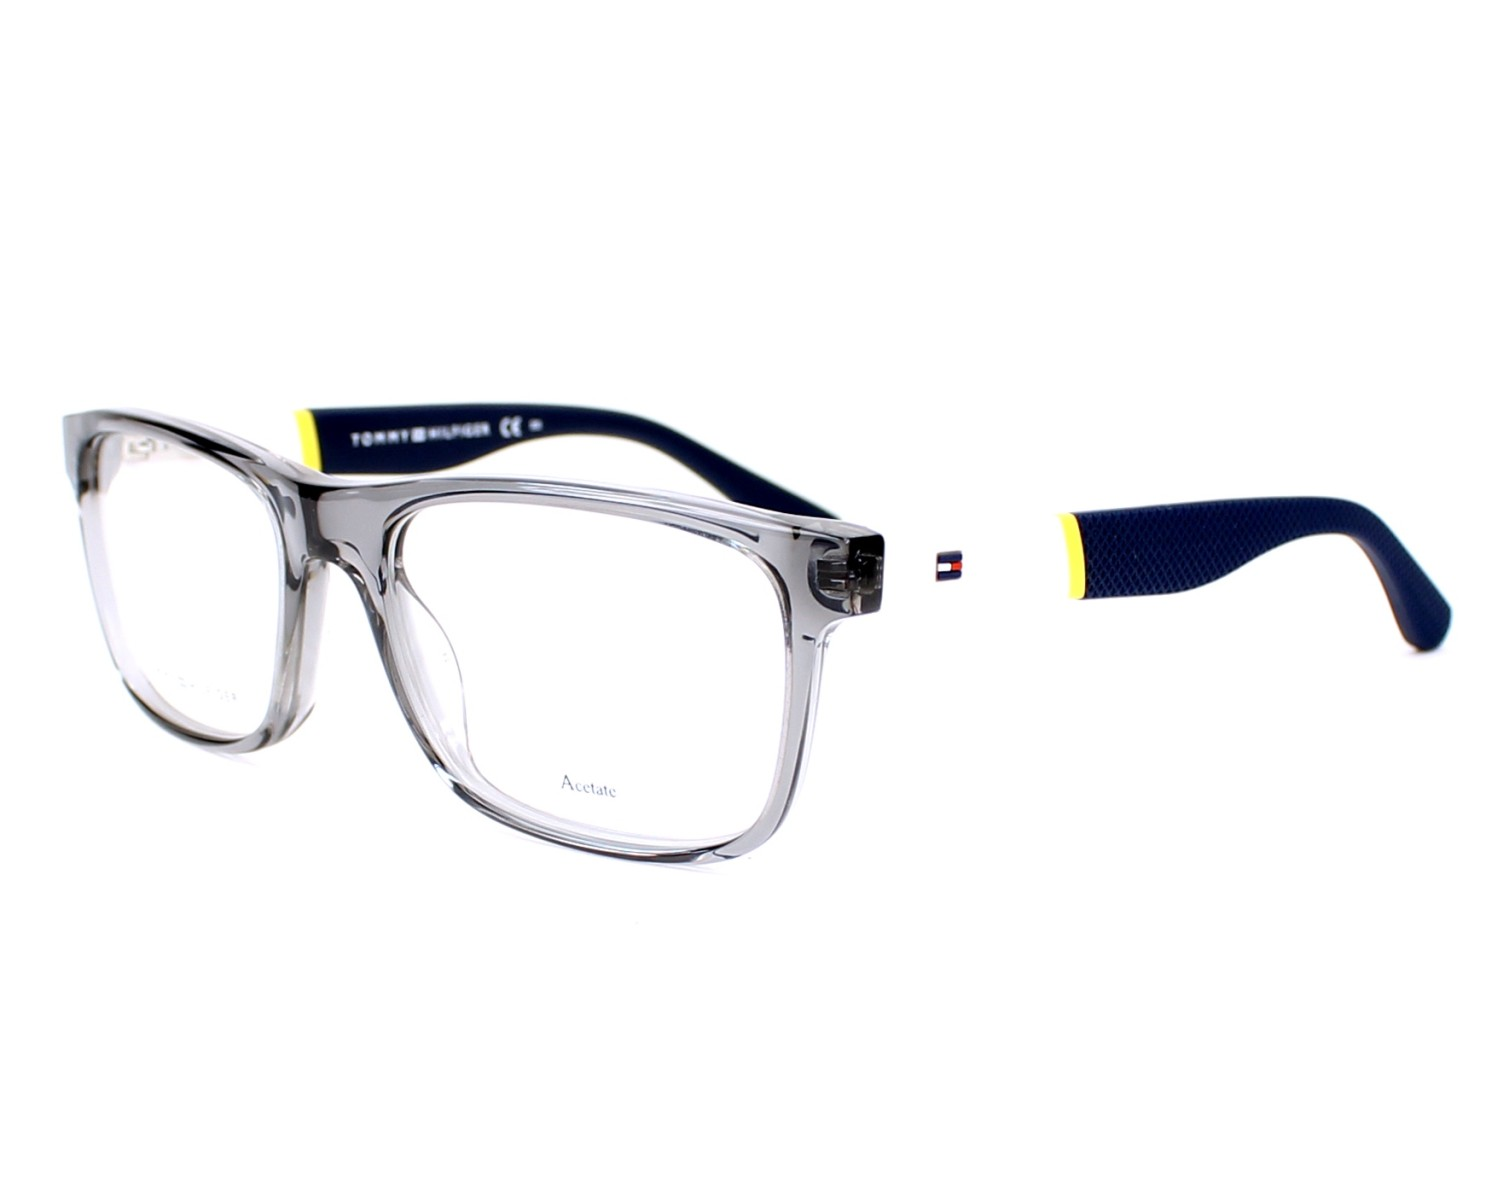 eyeglasses Tommy Hilfiger TH-1282 FNV 52-17 Grey White profile view 201495099337